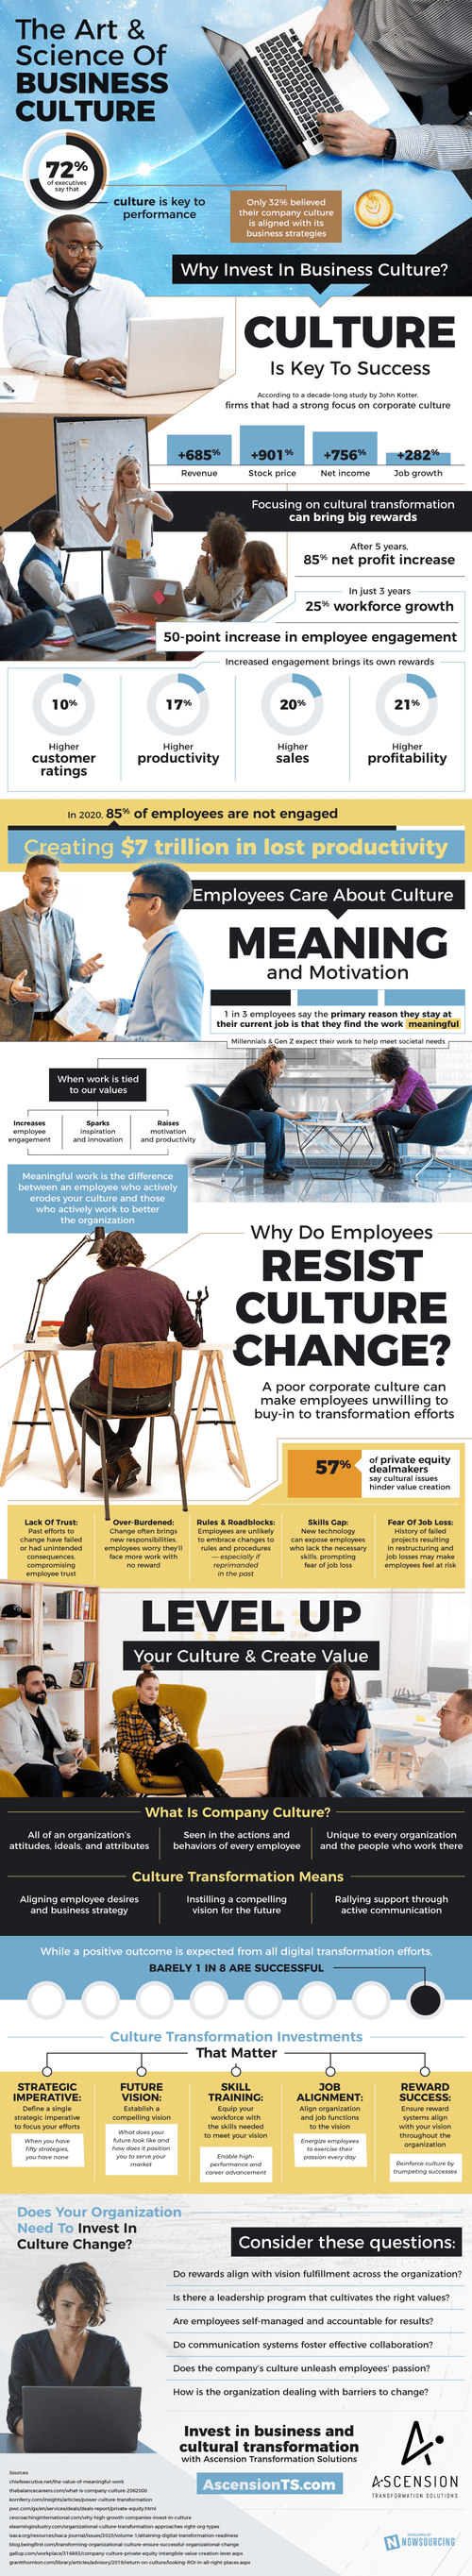 72% of executives say culture is key to performance but only... via Brian Wallace